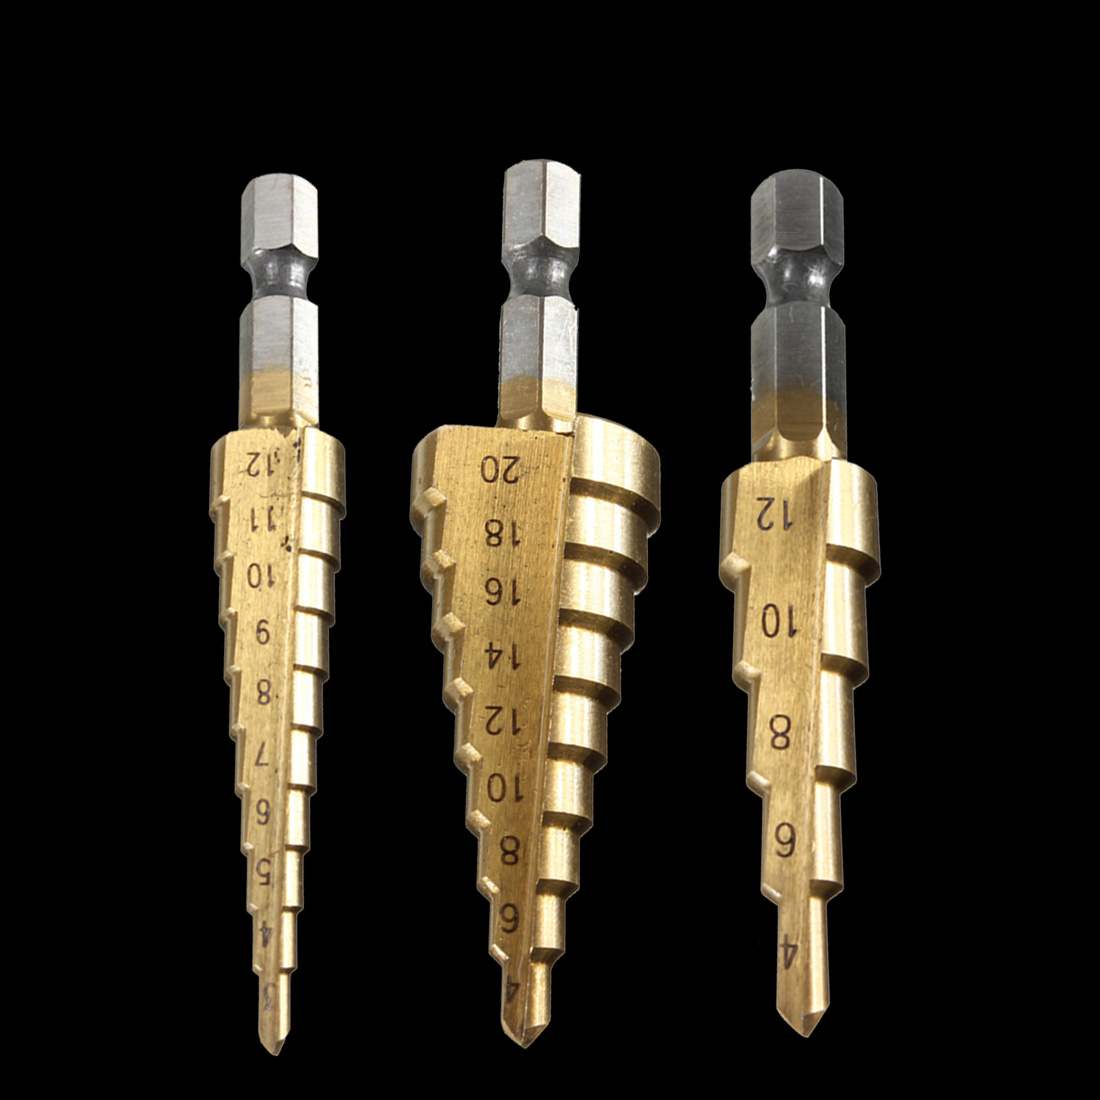 3pcs HSS Titanium Coated Step Drill Bit High Speed Steel Wood Drilling Power Tools 3-12mm 4-12mm 4-20mm Conductor For Drilling